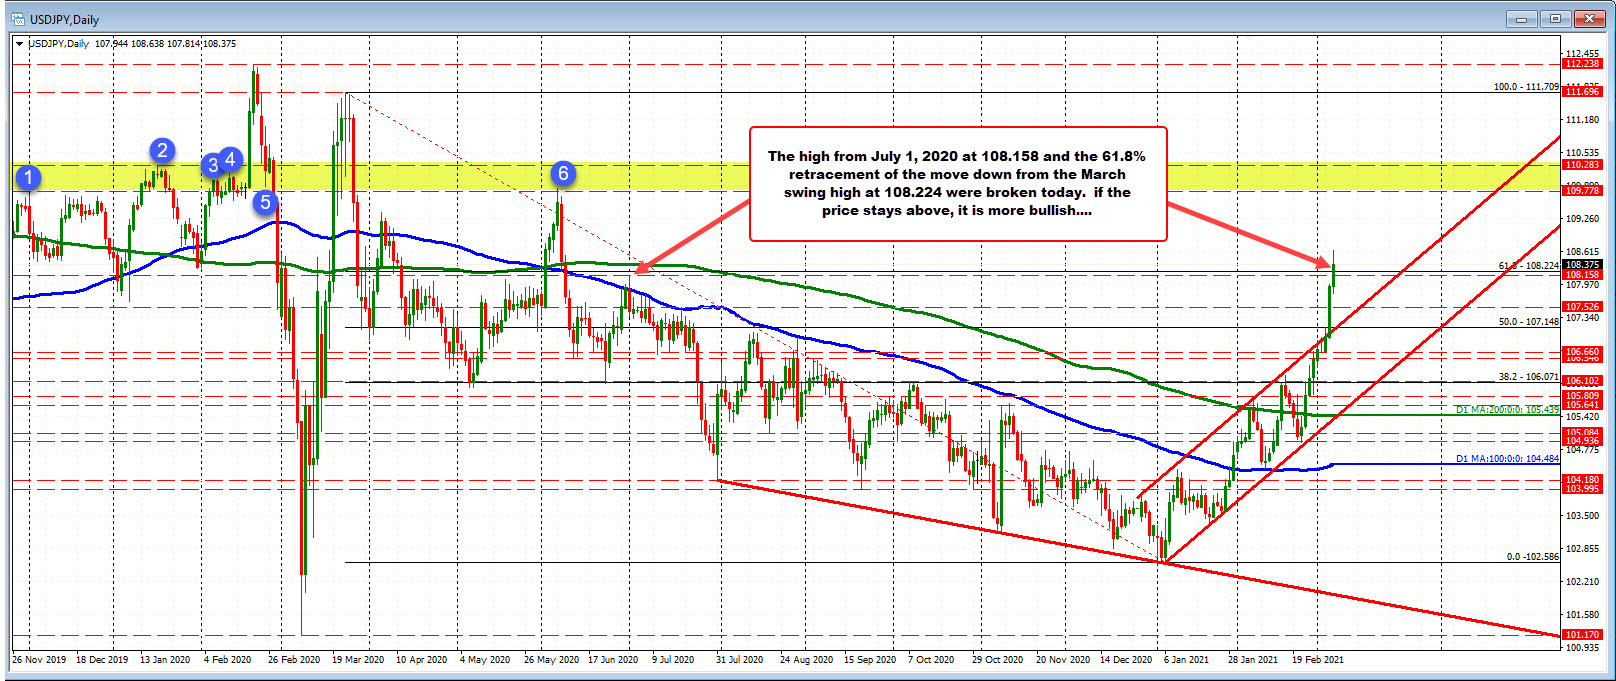 Traders will be eyeing the 108.158 to 108.224 area for support now